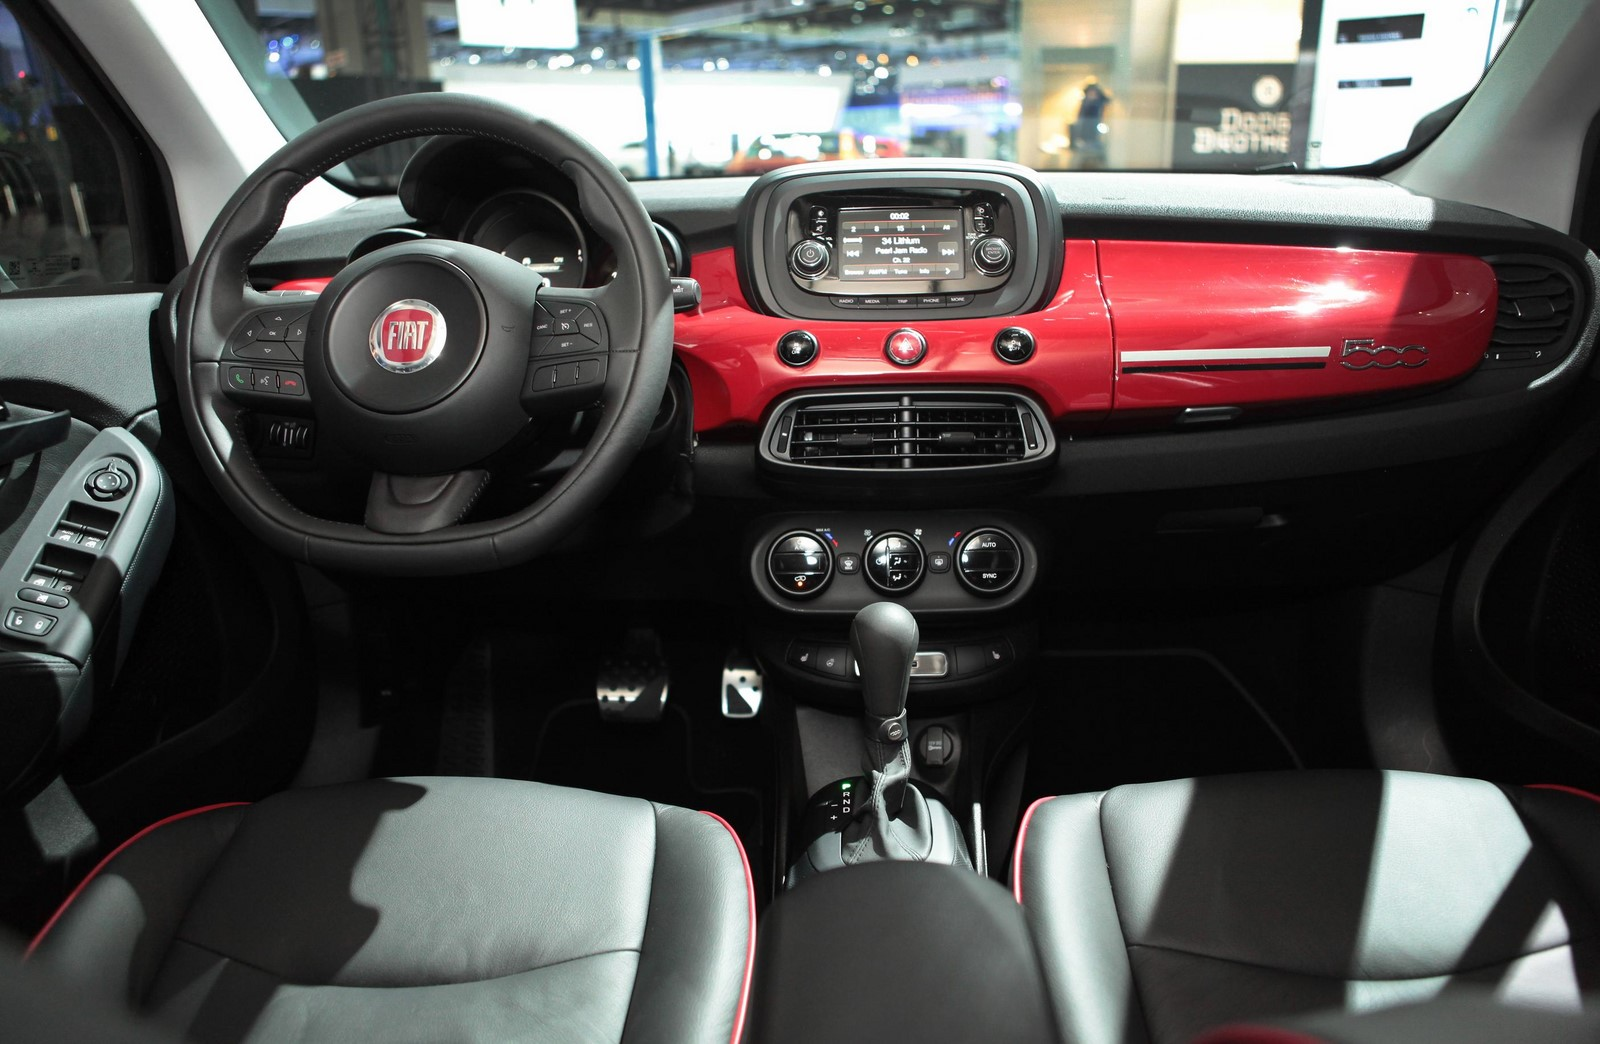 new fiat 500x 2015 interior designed for various personalities my car interior my car interior. Black Bedroom Furniture Sets. Home Design Ideas